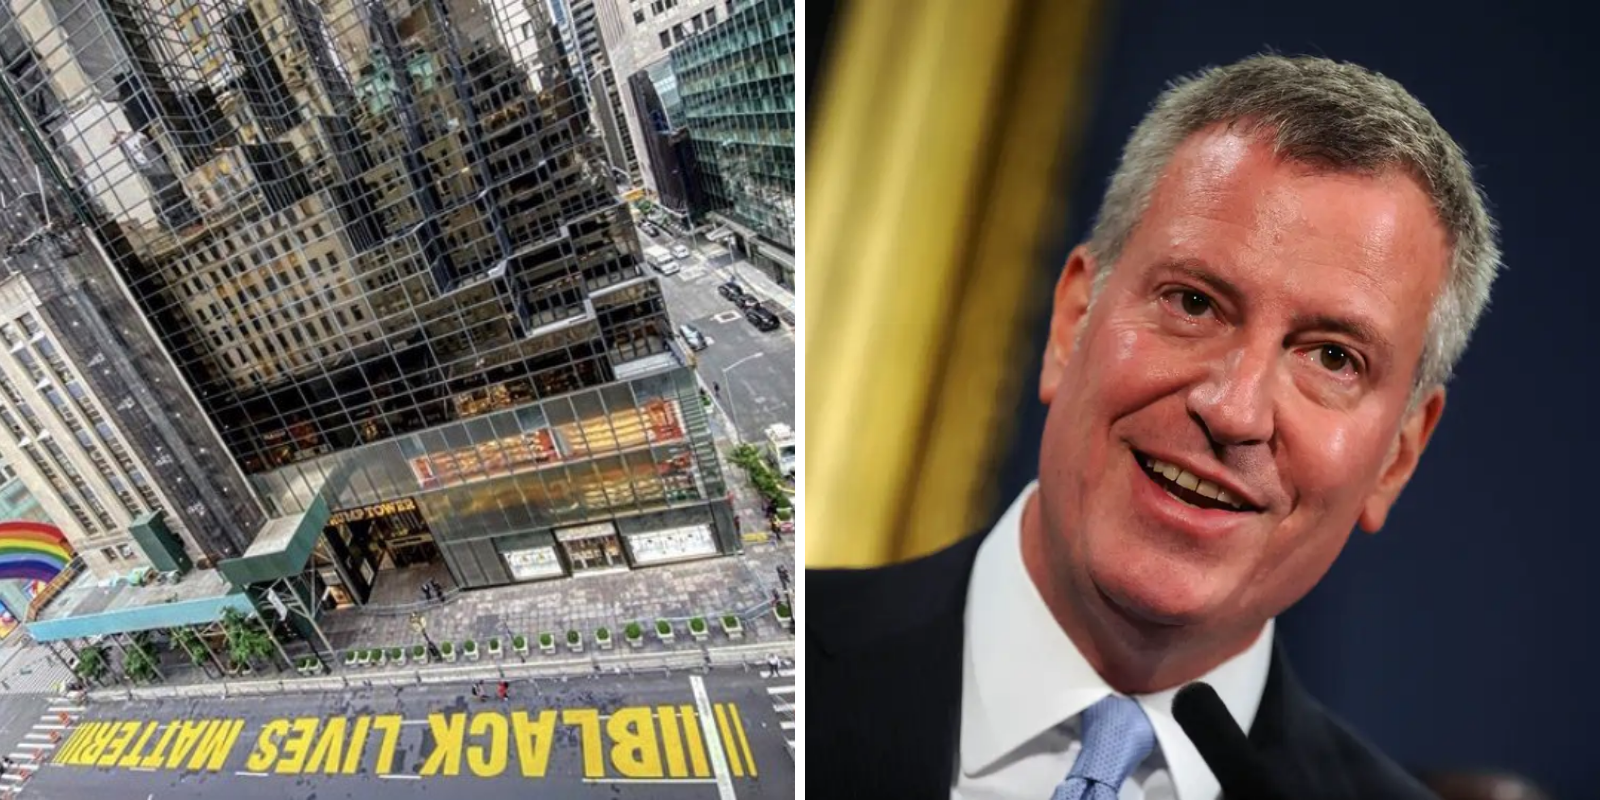 Bill de Blasio uses police to guard 'Black Lives Matter' mural as NYC violence continues